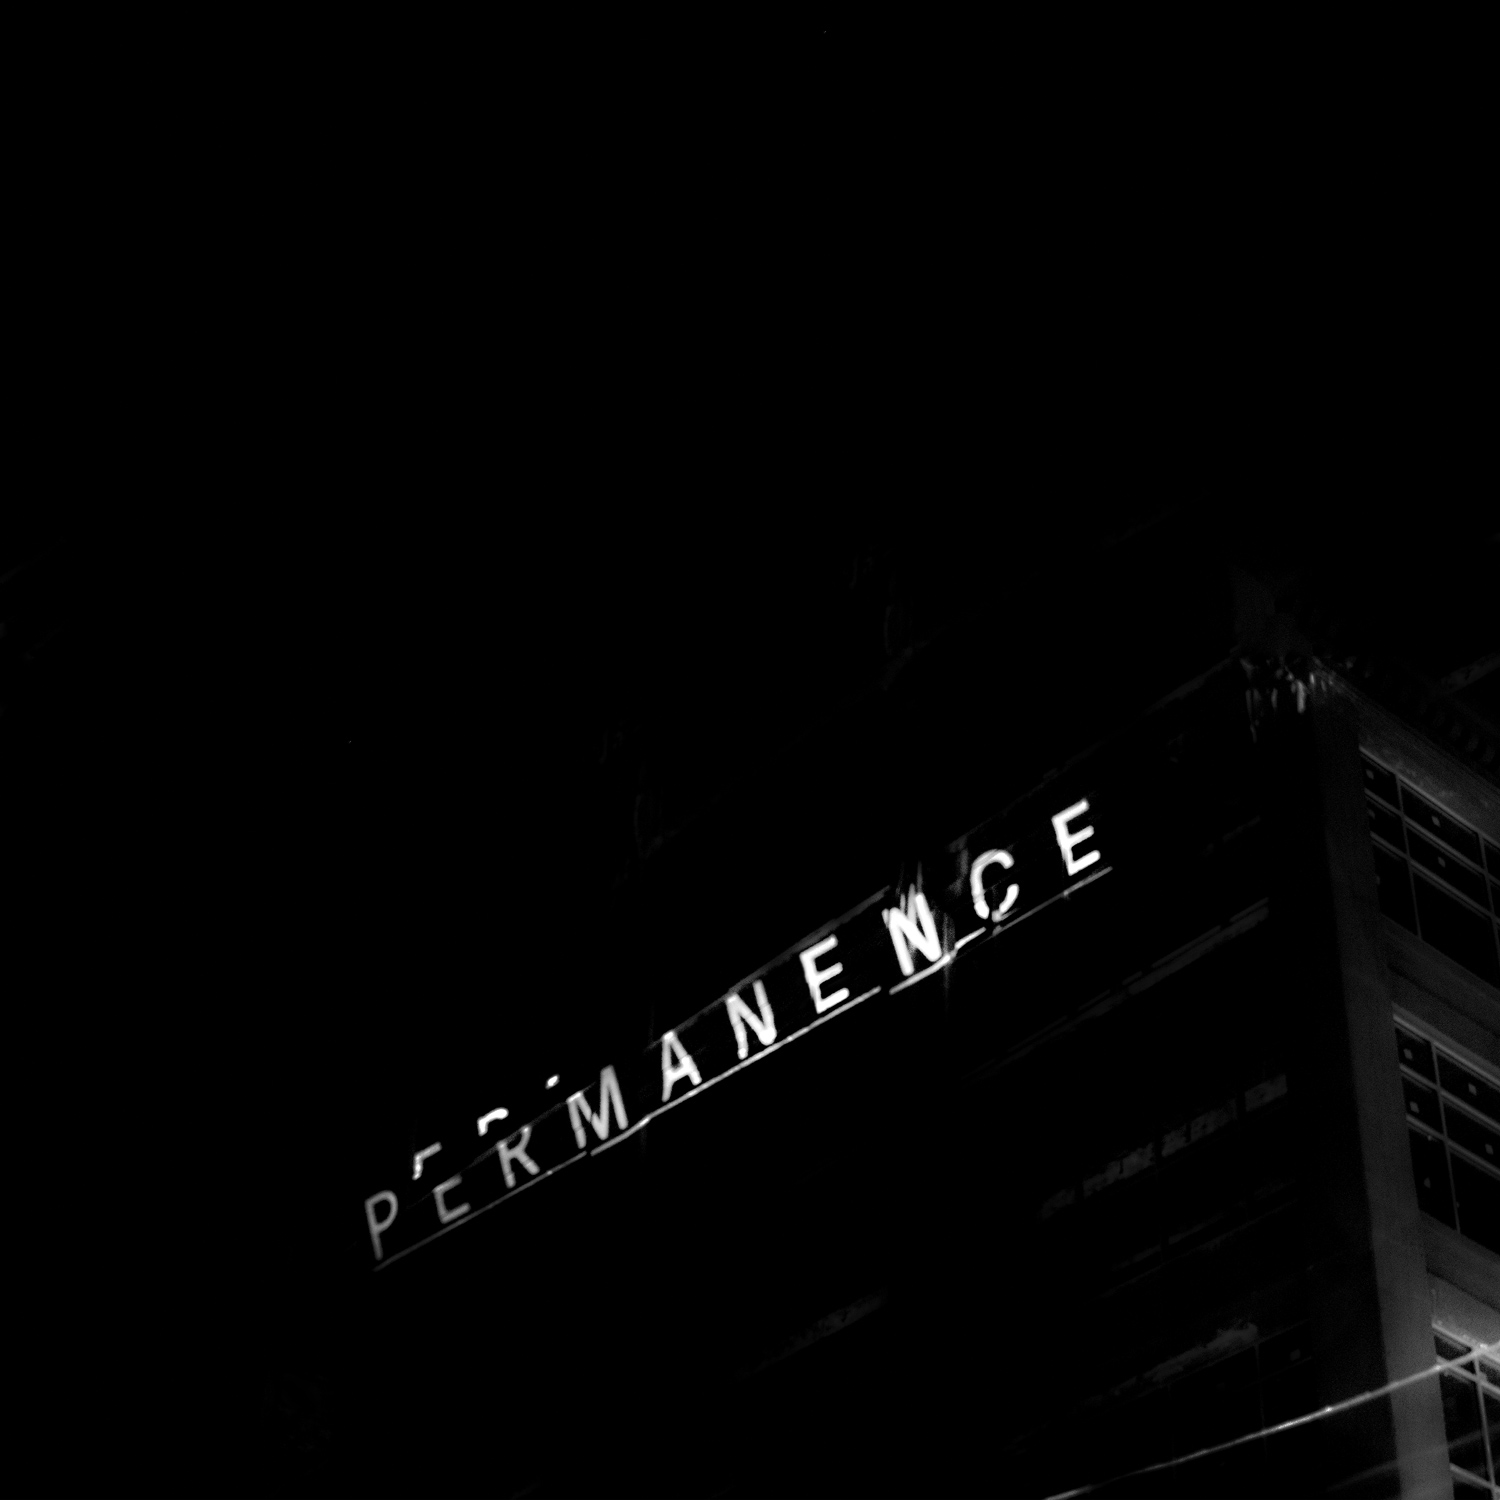 Permanence_Artwork.jpg